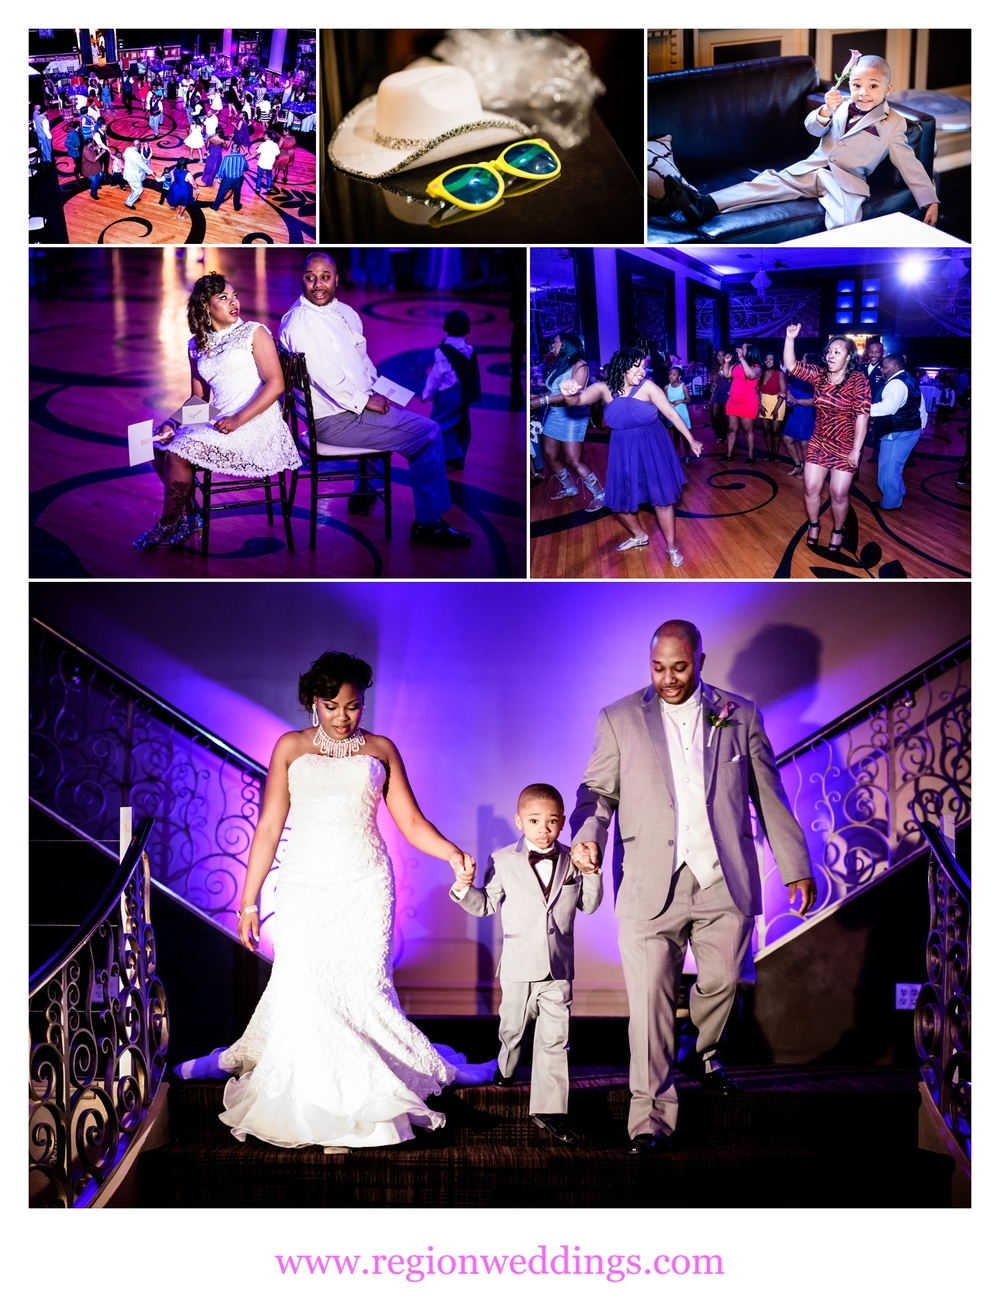 reception-photos-the-allure-ballroom.jpg